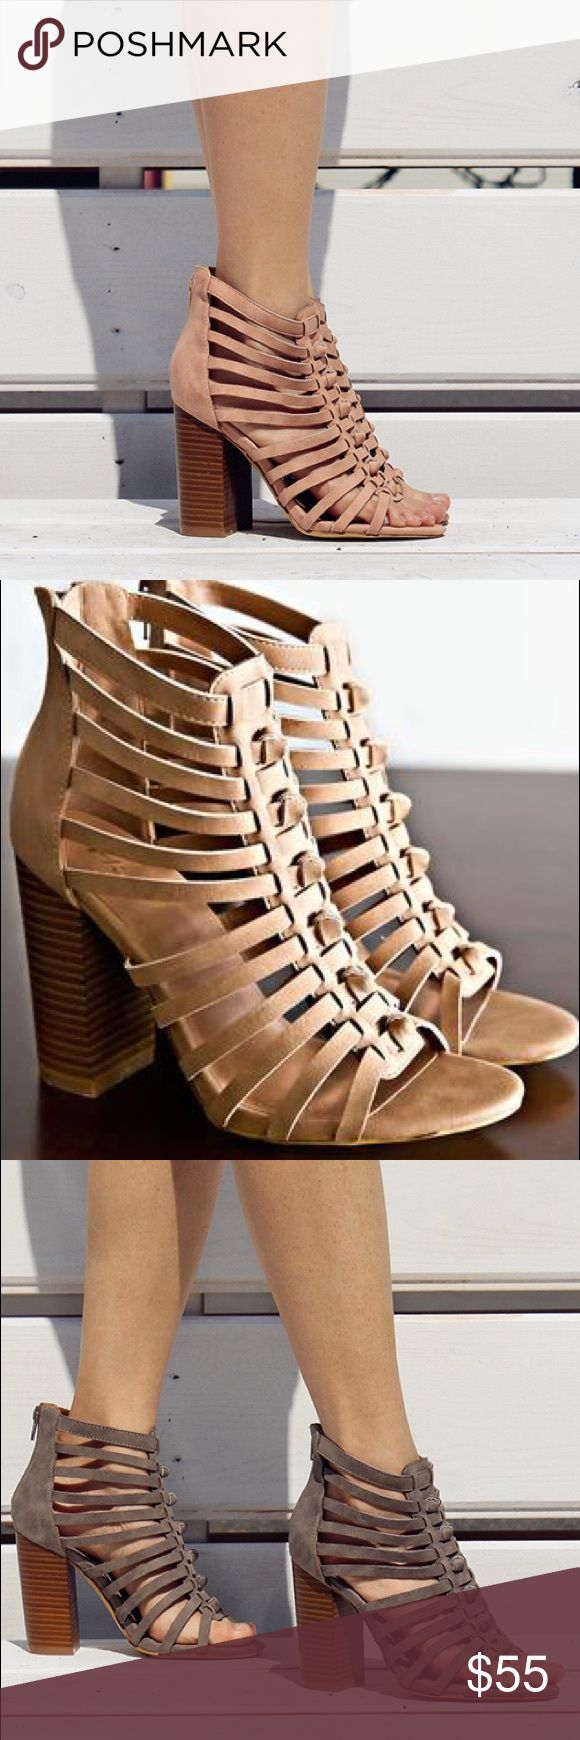 Ladies high top straps chunky heels sandal. Rose Summer is here! Walk in style with this stylish sandal, super comfy, hot color, brand new in box, man made material, 3-4 inches hells, true to size. Available grey color as well. NO TRADES shoeroom21 boutique Shoes Heels